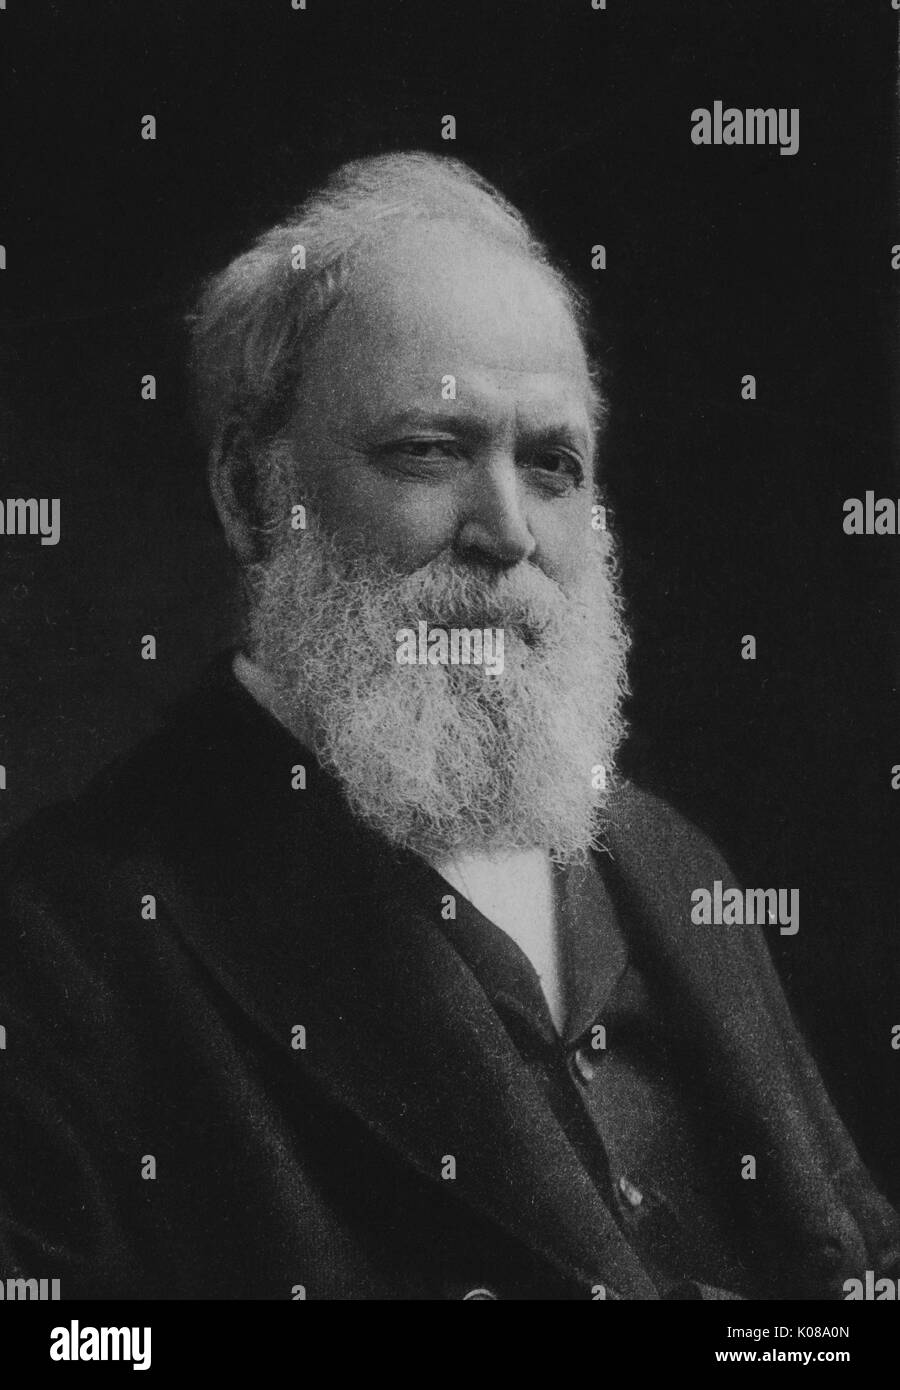 Half length seated portrait of American classical scholar Basil Lanneau Gildersleeve with a neutral expression, 1890. - Stock Image